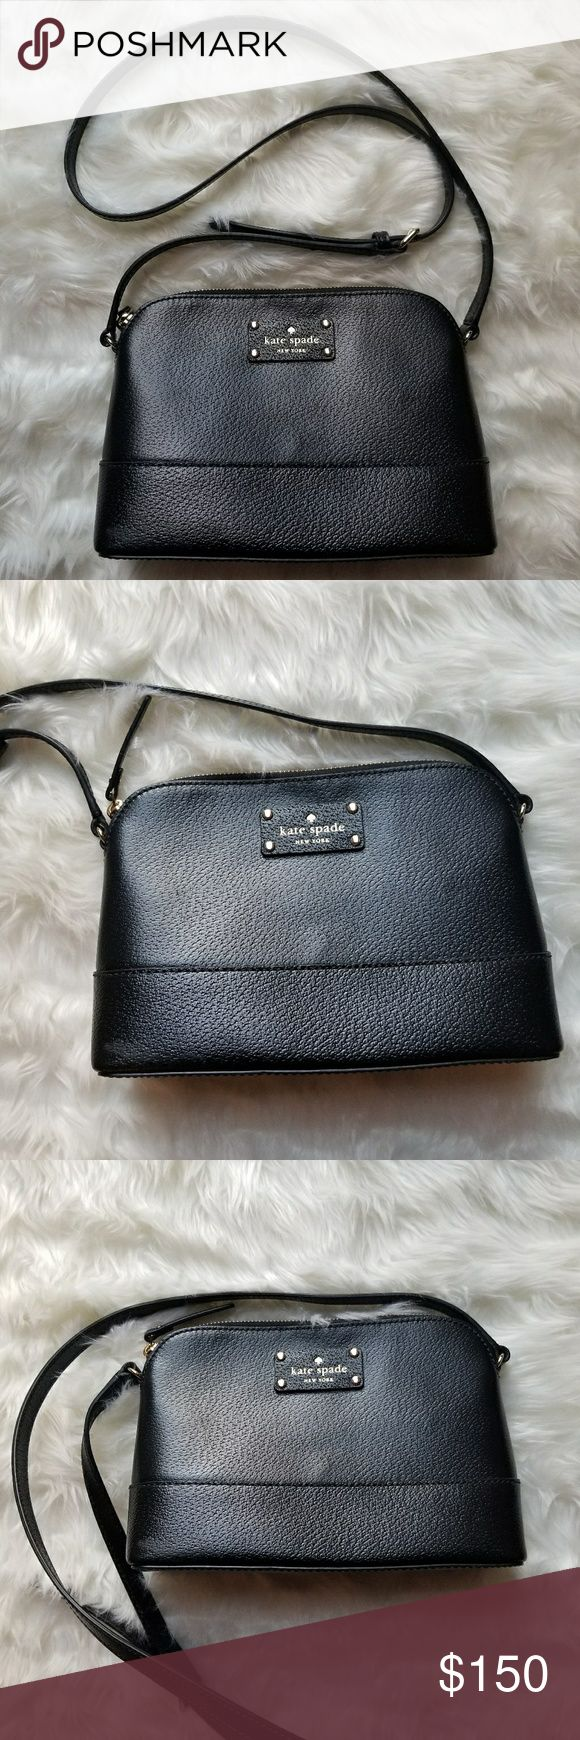 Kate Spade Wellesley Hanna Black Leather Crossbody Kate Spade Wellesley Hanna Black Leather Crossbody.. Used a few times. Excellent condition.. 7' from top to bottom; 9' across. kate spade Bags Crossbody Bags